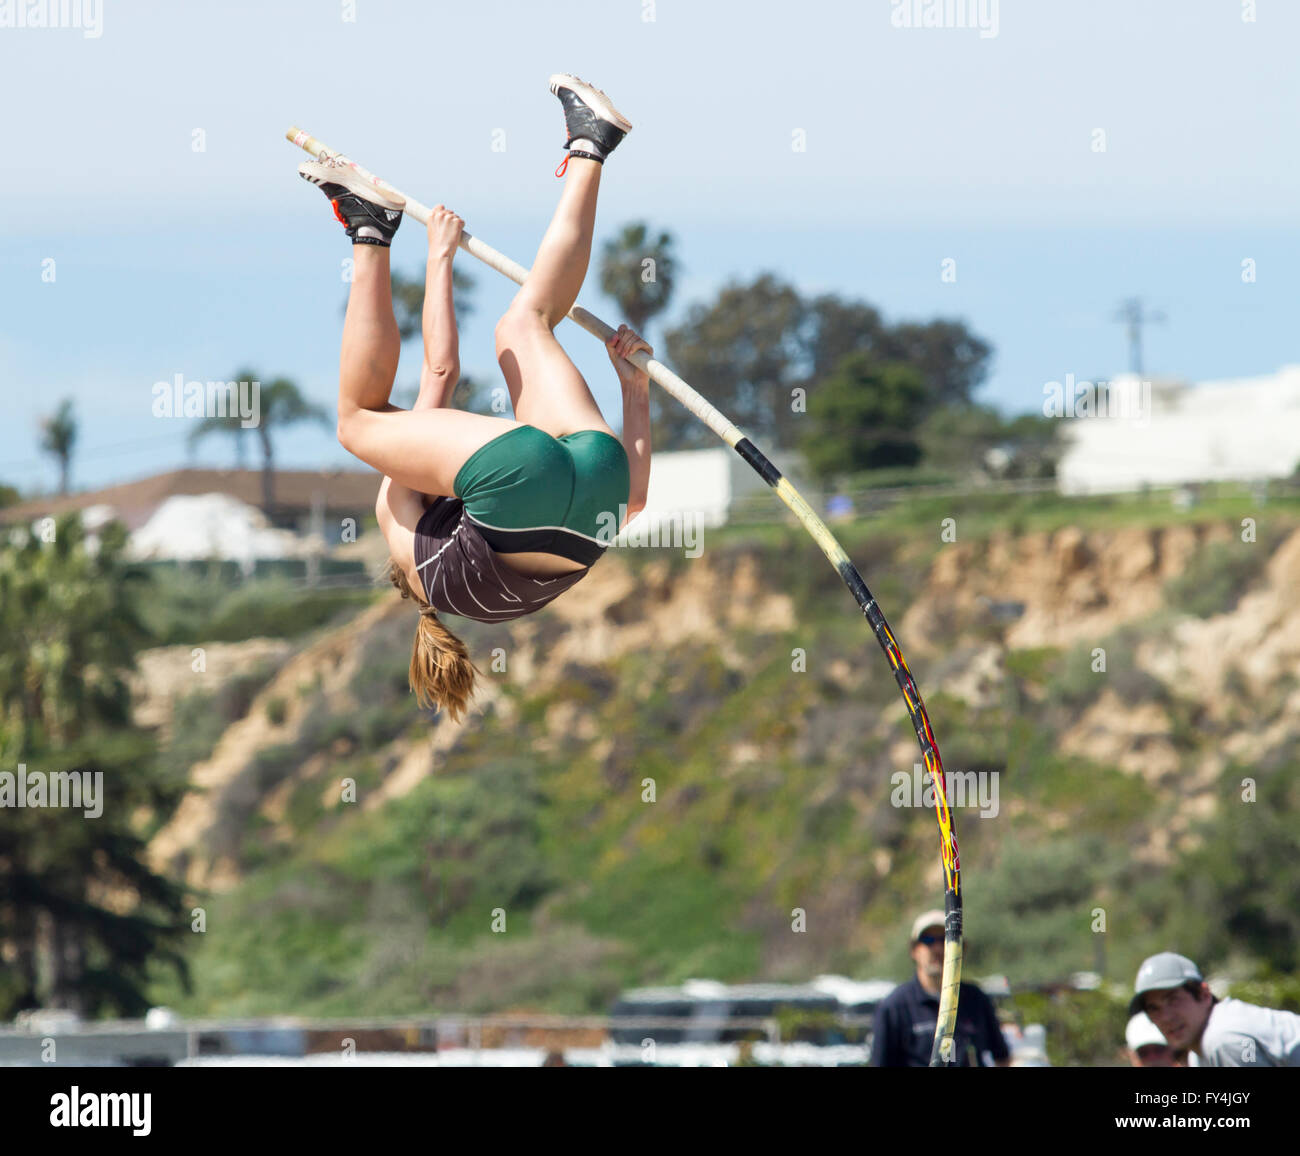 Female pole vaulter building momentum to clear vault bar - Stock Image